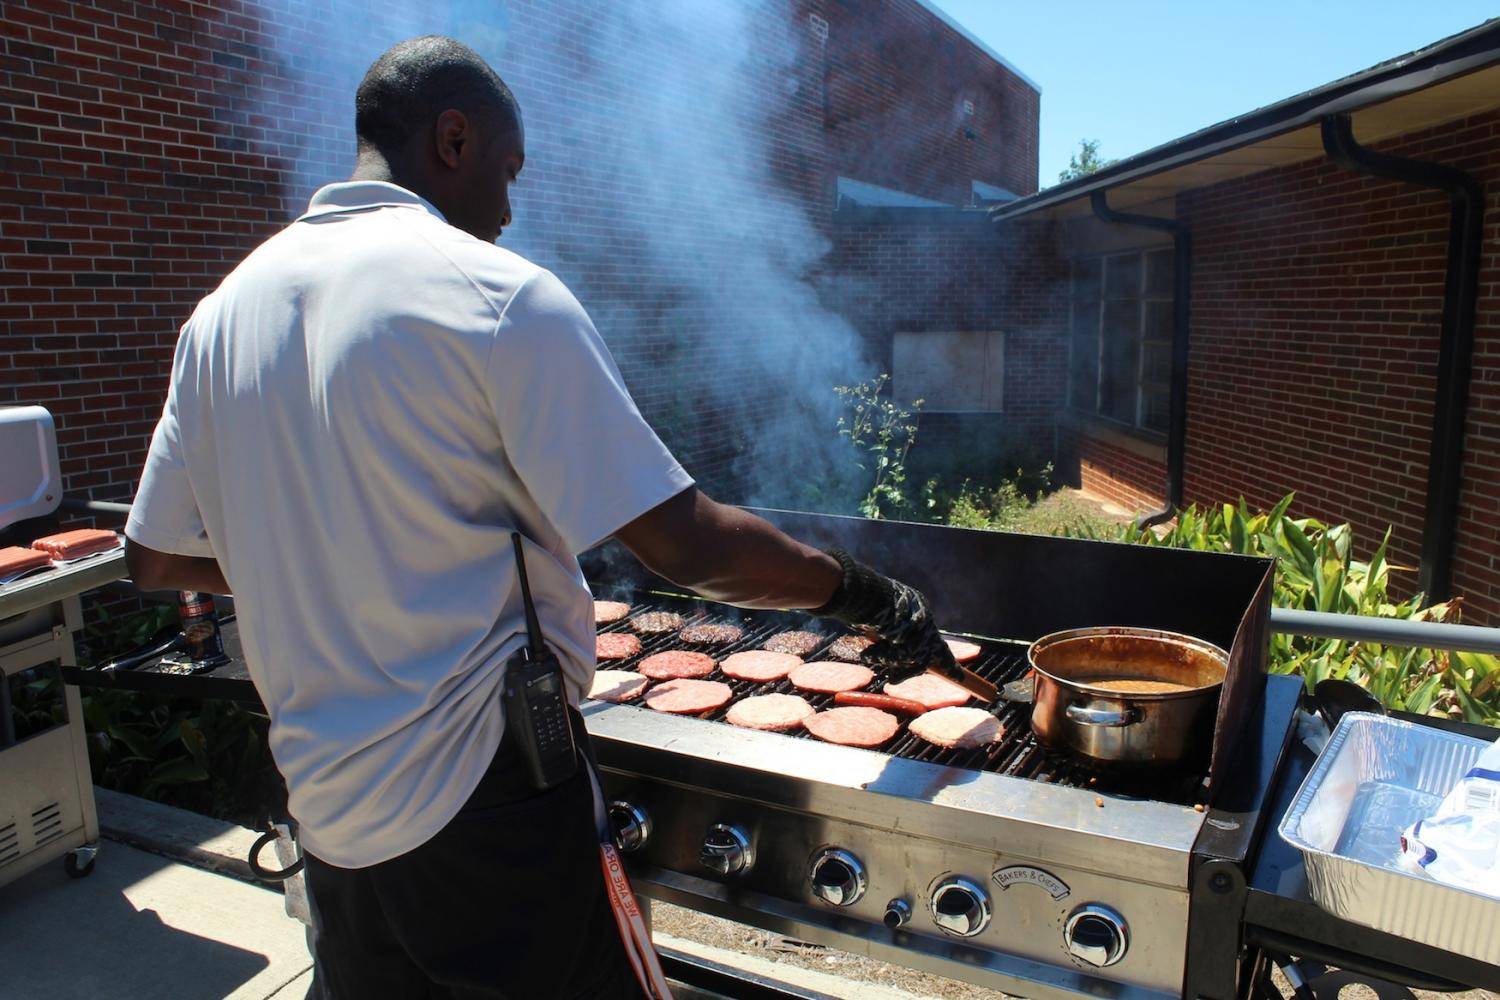 NC administrator, Kiel Southwell, grills hamburger beef and sausages in honor of Teacher Appreciation Week. Gathering together in the courtyard, NC teachers and administrators enjoyed their meal as they talked and celebrated with one another.